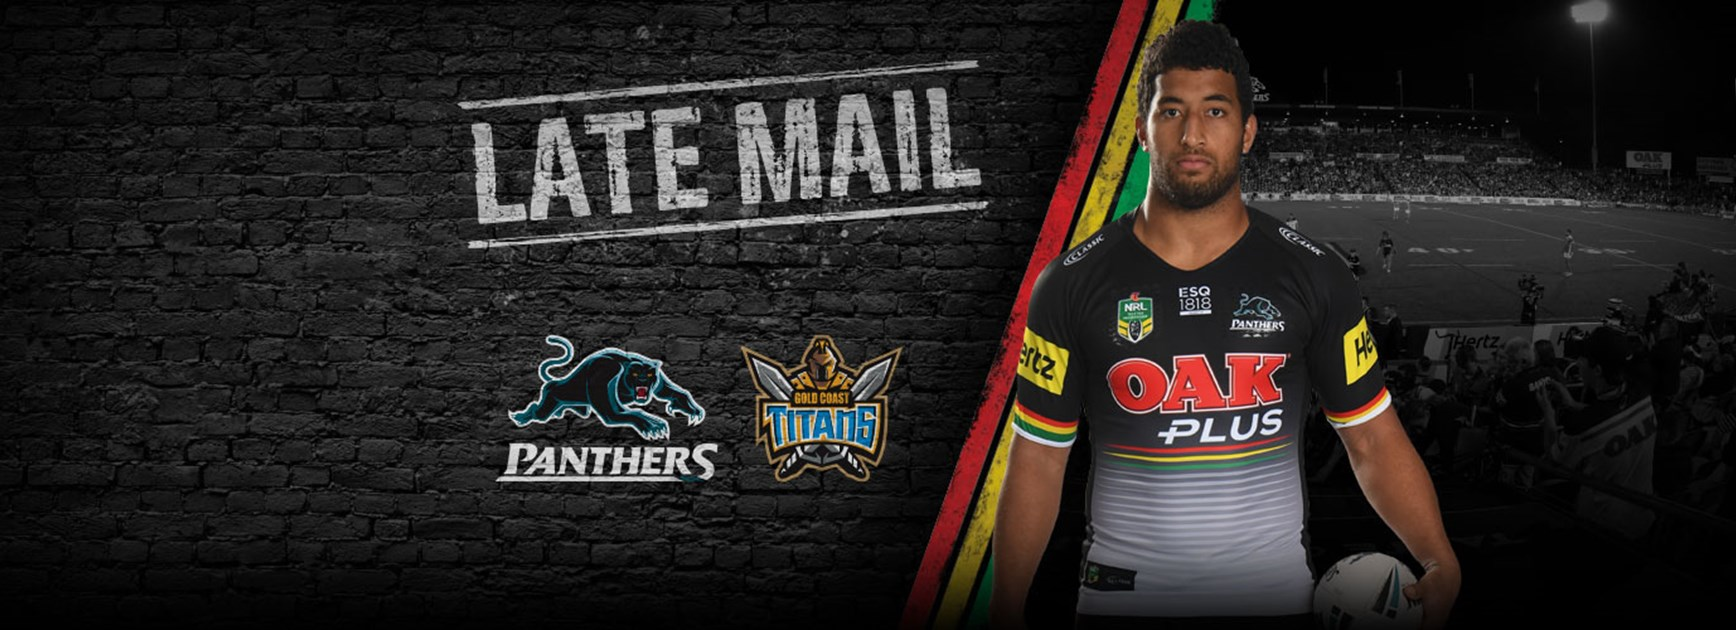 NRL Late Mail: Round 6